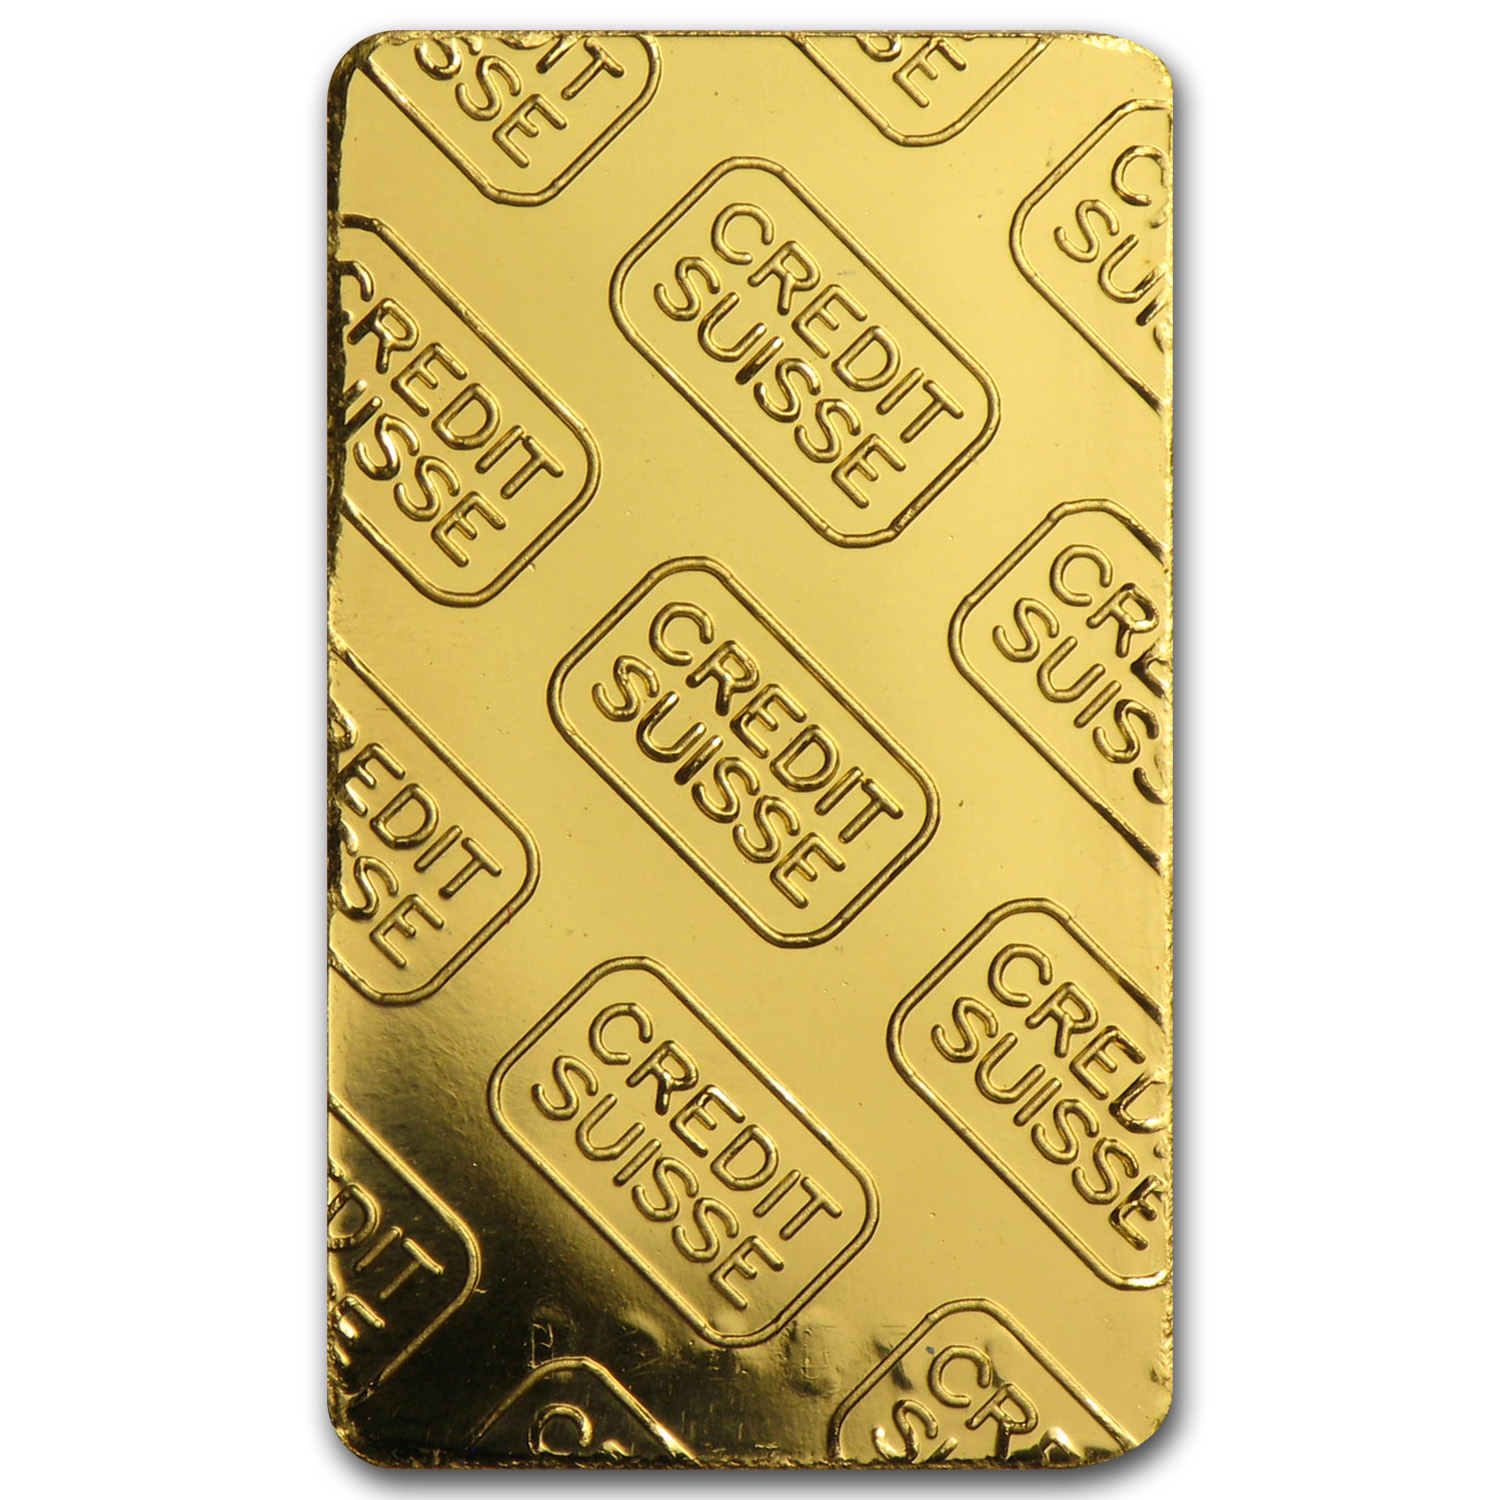 2.5 gram Gold Bars - Secondary Market